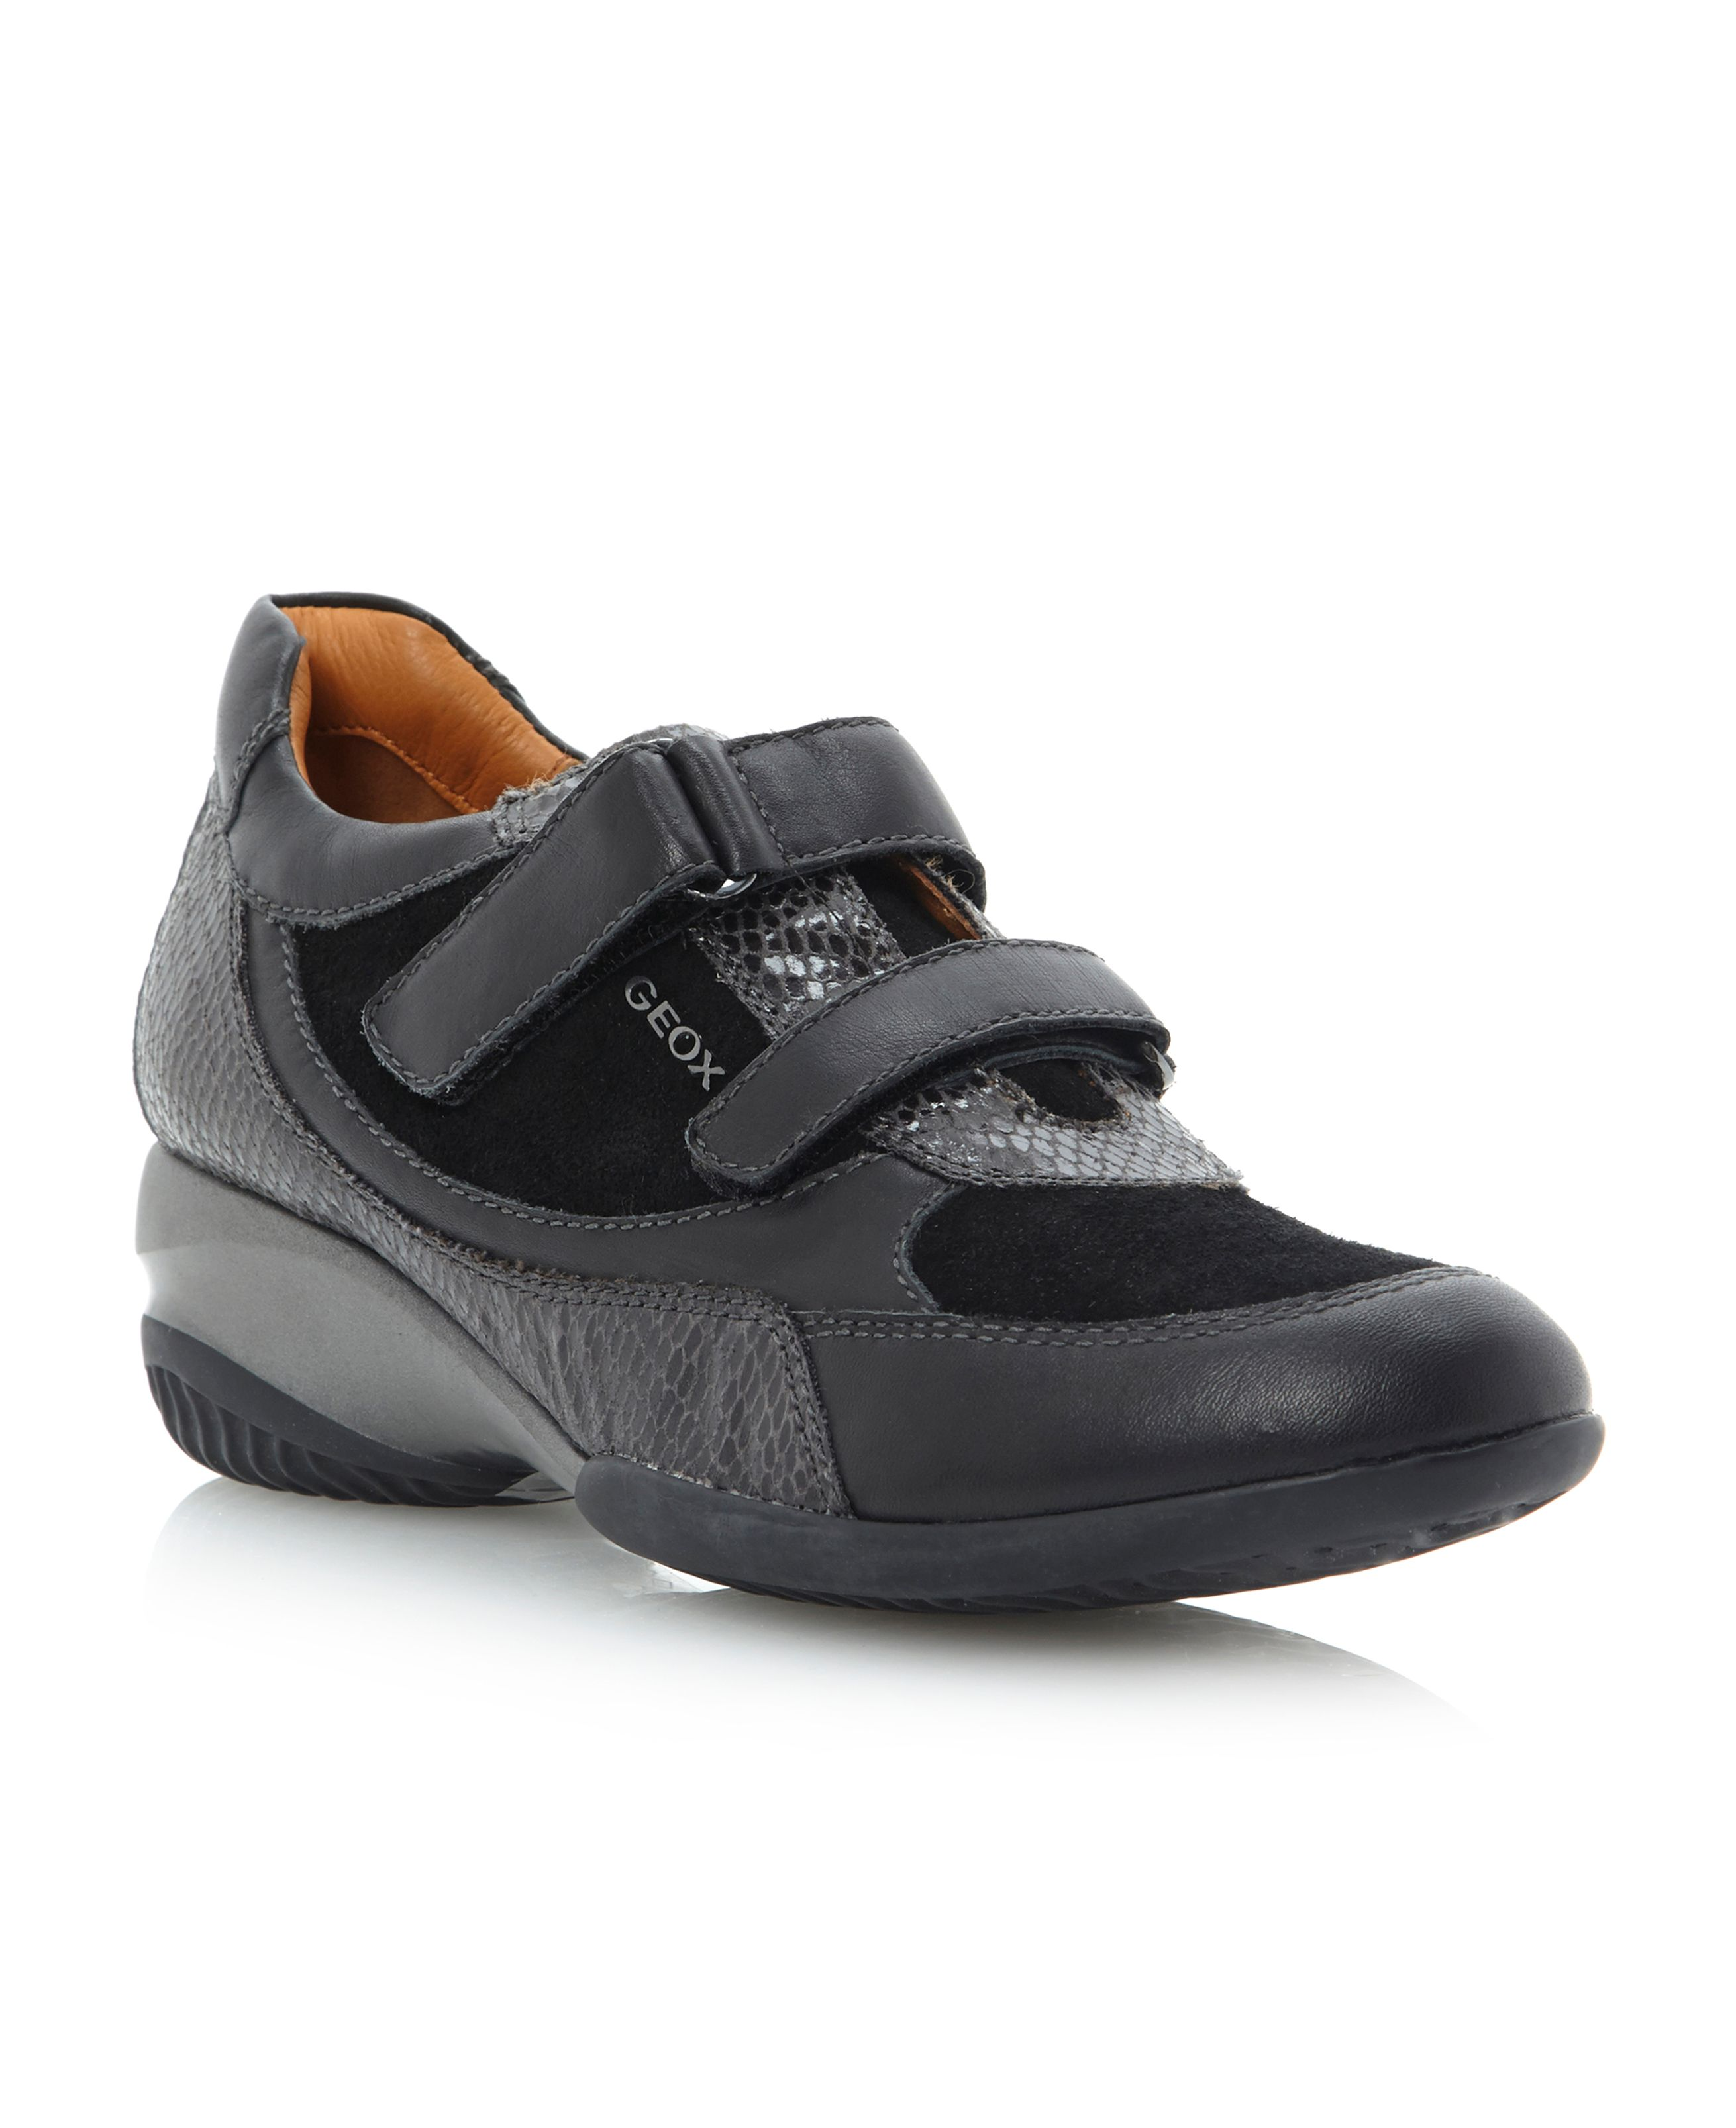 Ada D2482E-velcro strap wedge trainer shoes